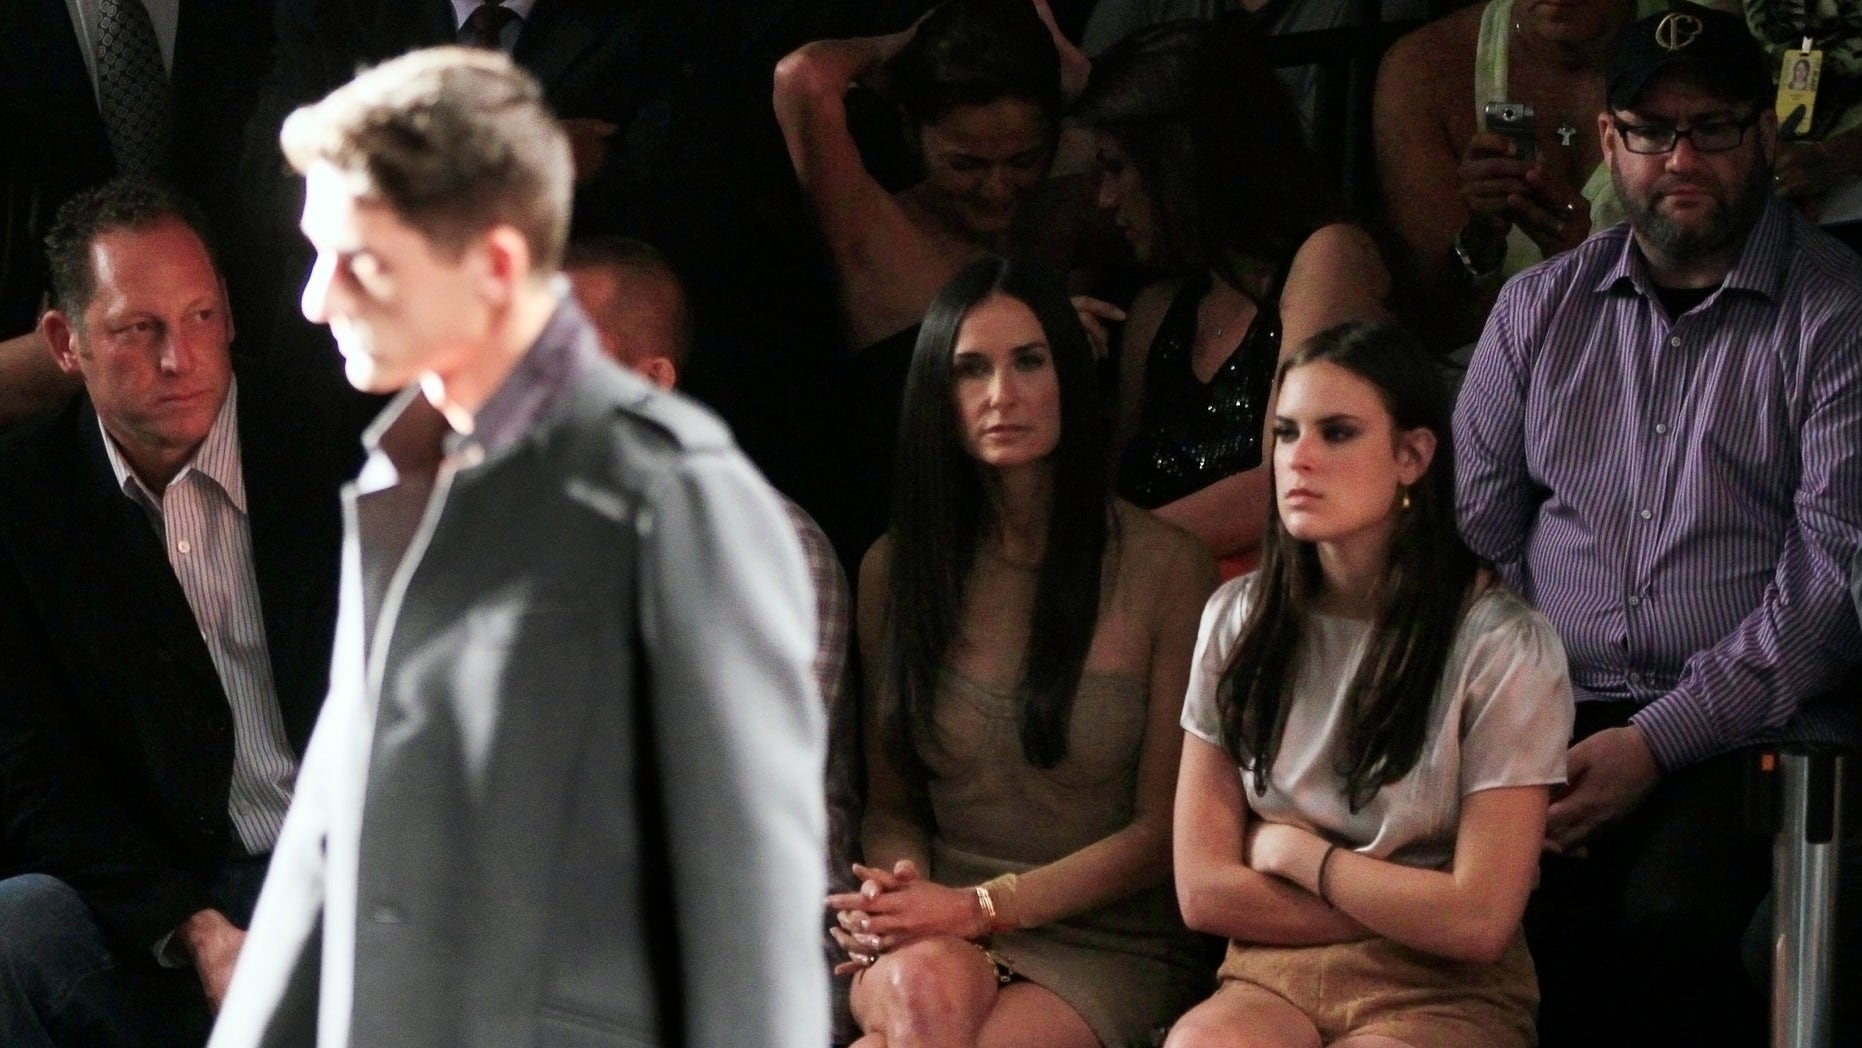 January 30, 2011. Demi Moore (L) and her daughter Tallulah Willis watch the Colcci's collection show during Sao Paulo Fashion week Winter 2011 in Sao Paulo, Brazil.